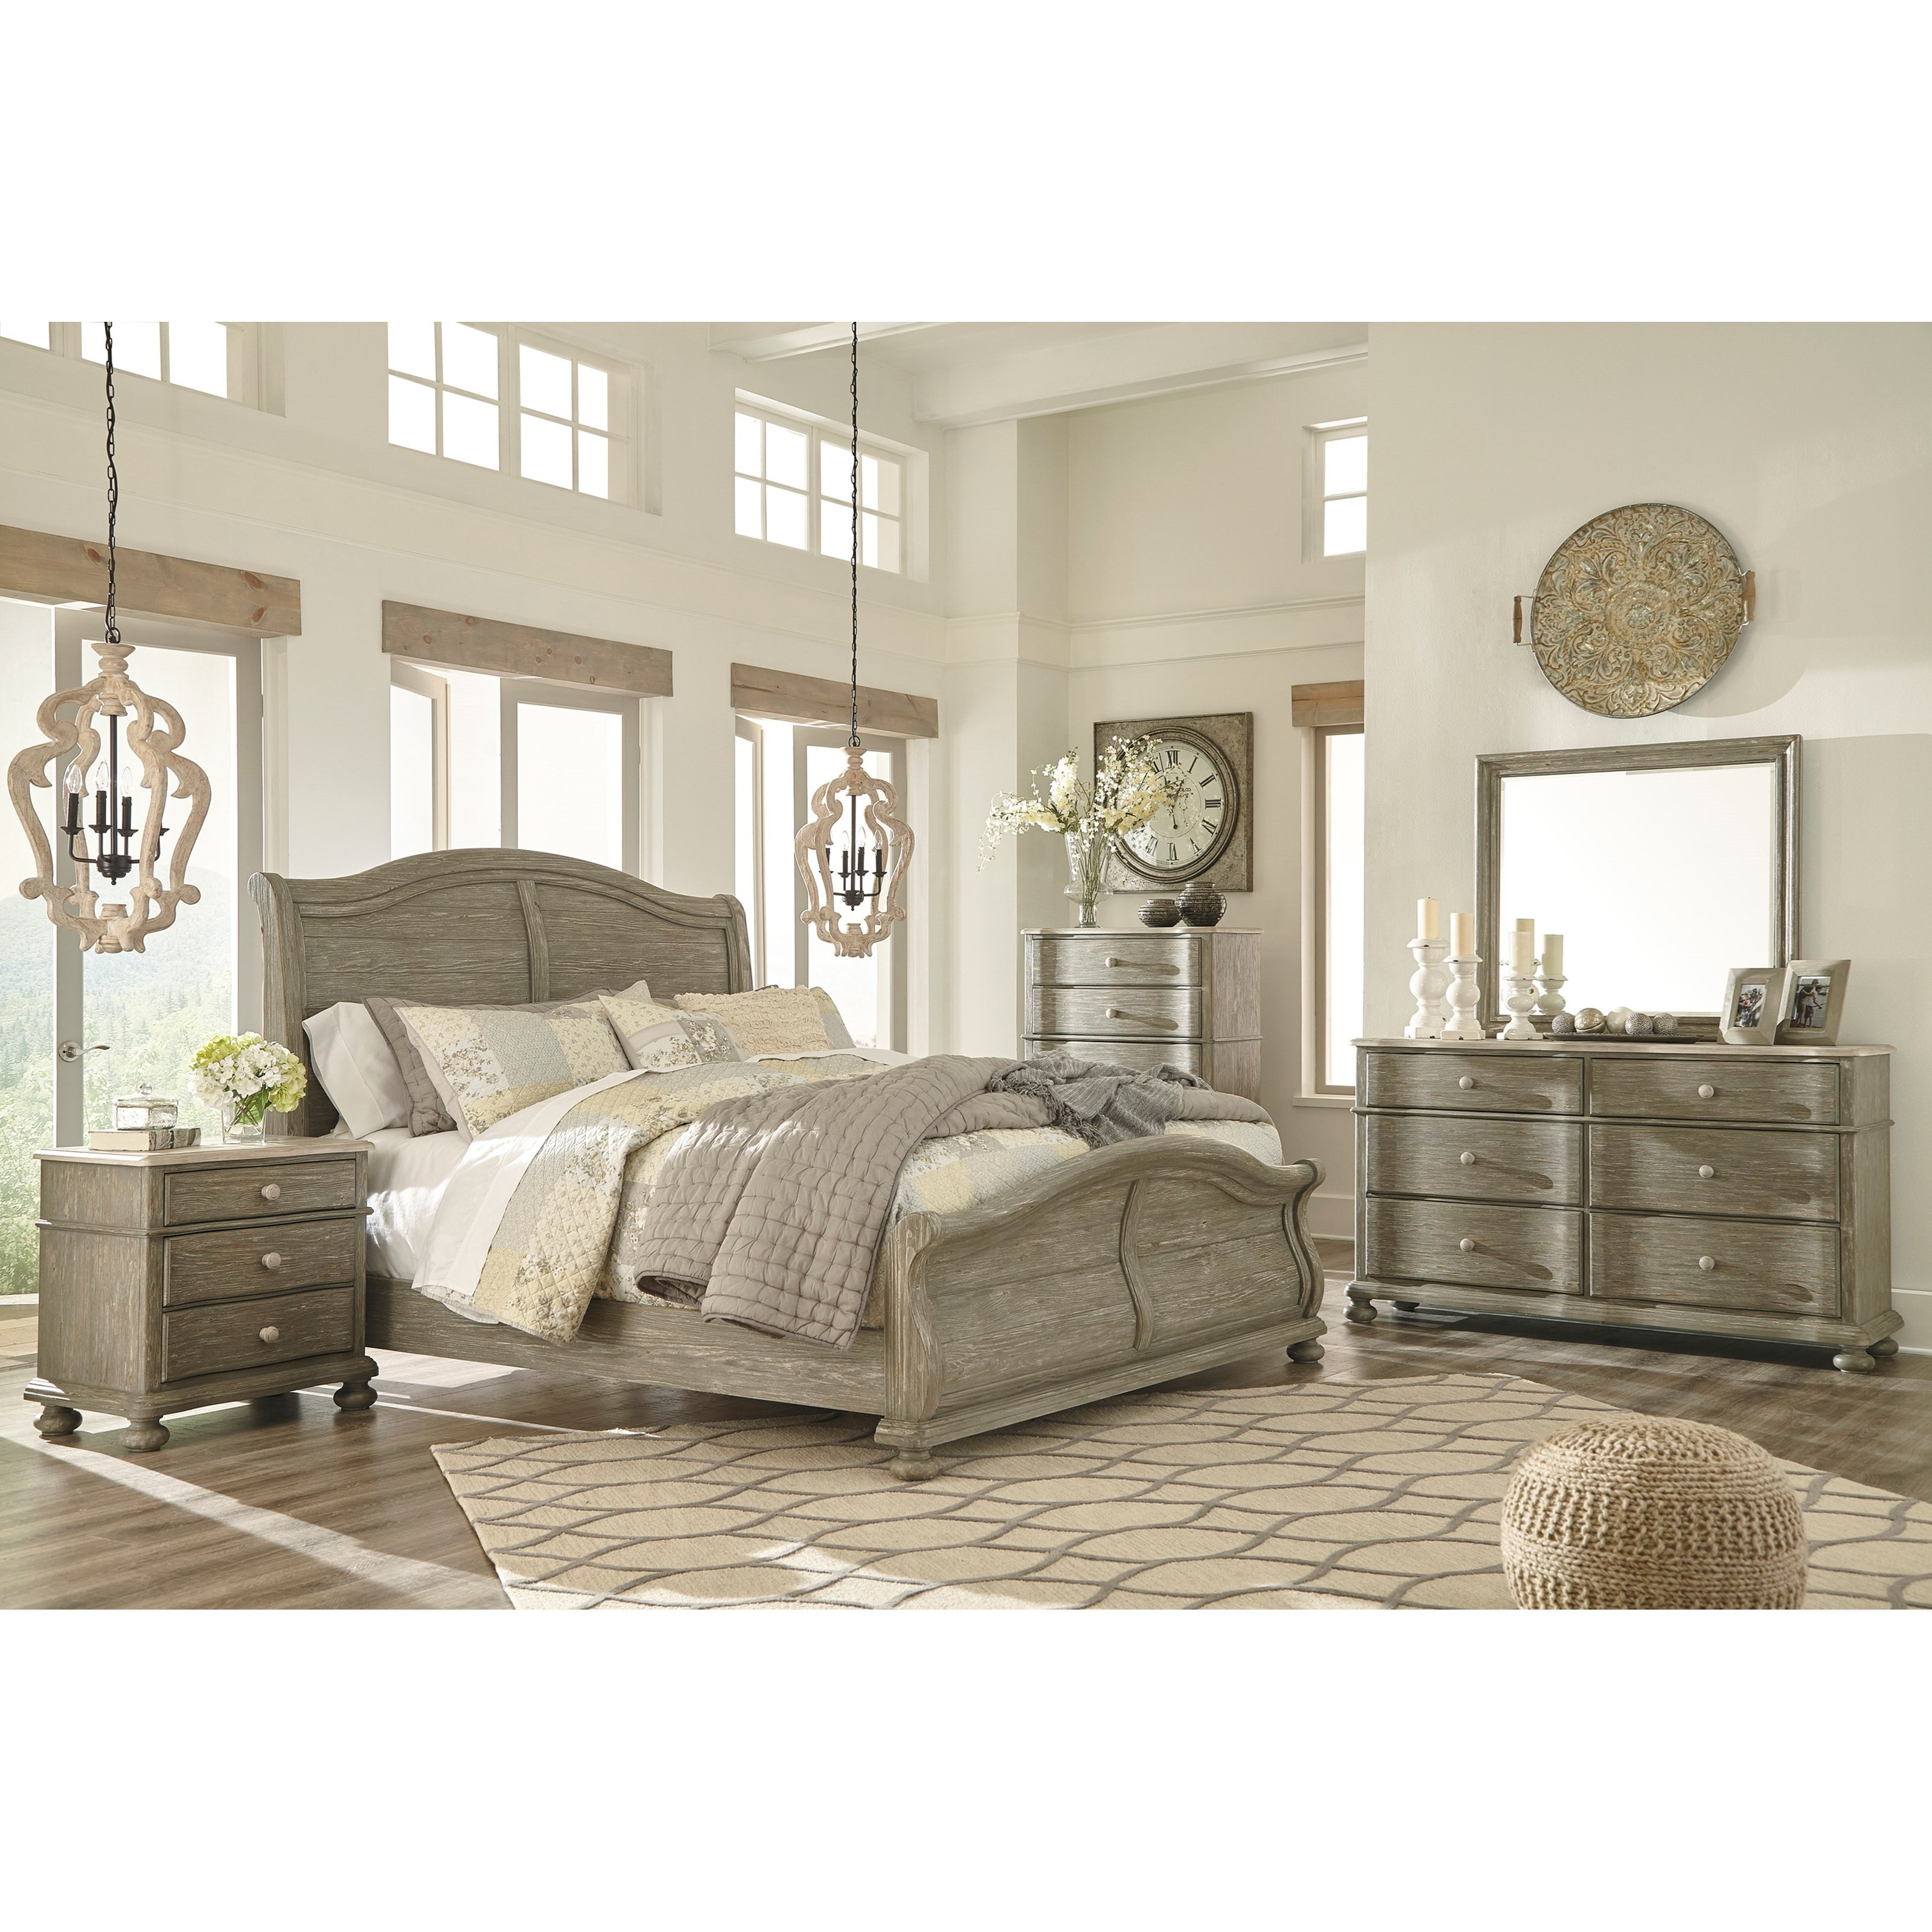 Signature Design by Ashley Marleny Queen Bedroom Group Royal